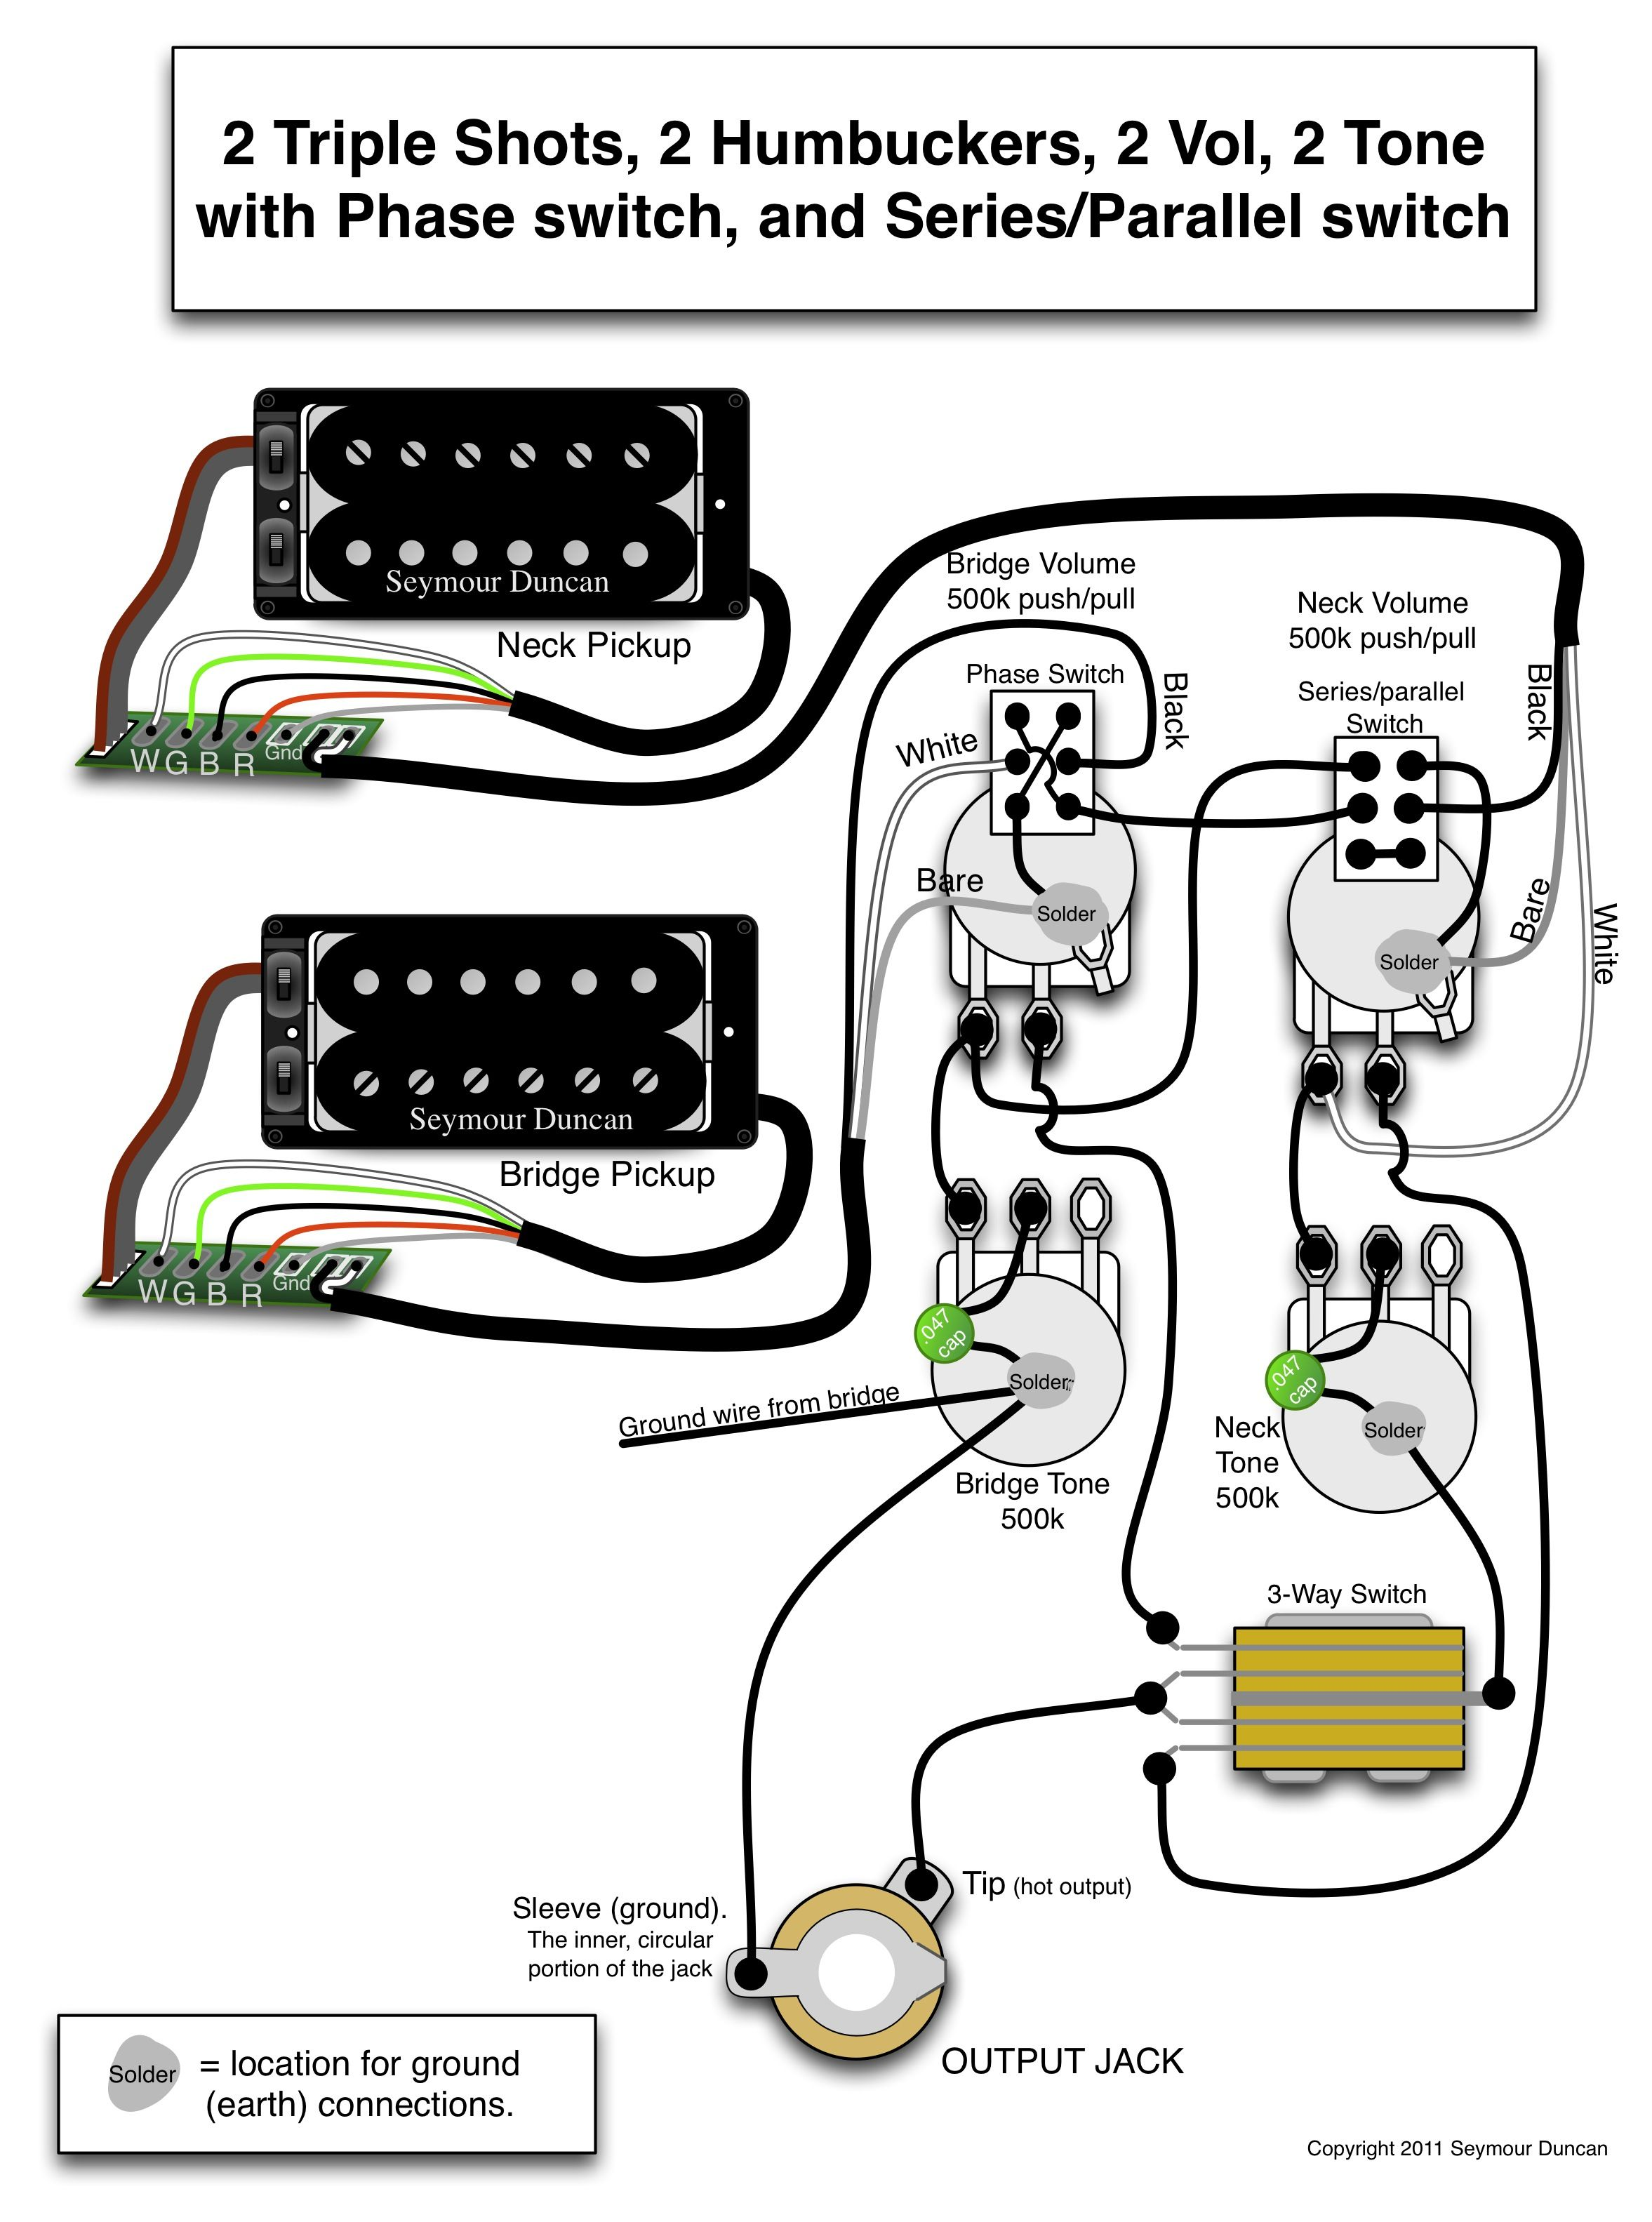 seymour duncan wiring diagram 2 triple shots 2 humbuckers 2 vol rh pinterest com seymour duncan blackout wiring diagram seymour duncan blackout wiring diagram